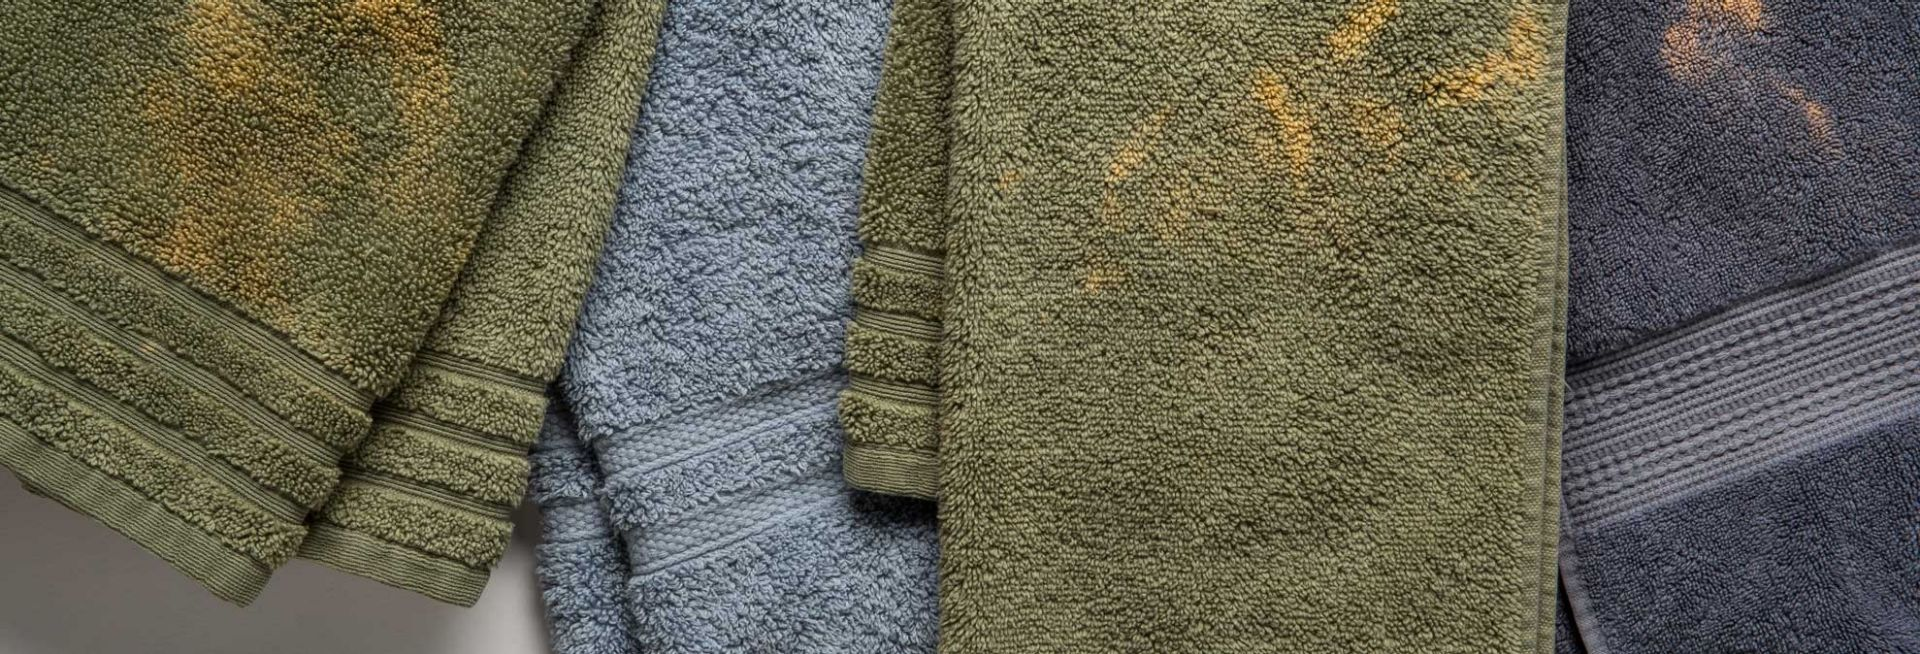 Towels That Resist Bleaching From Benzoyl Peroxide Benzoyl